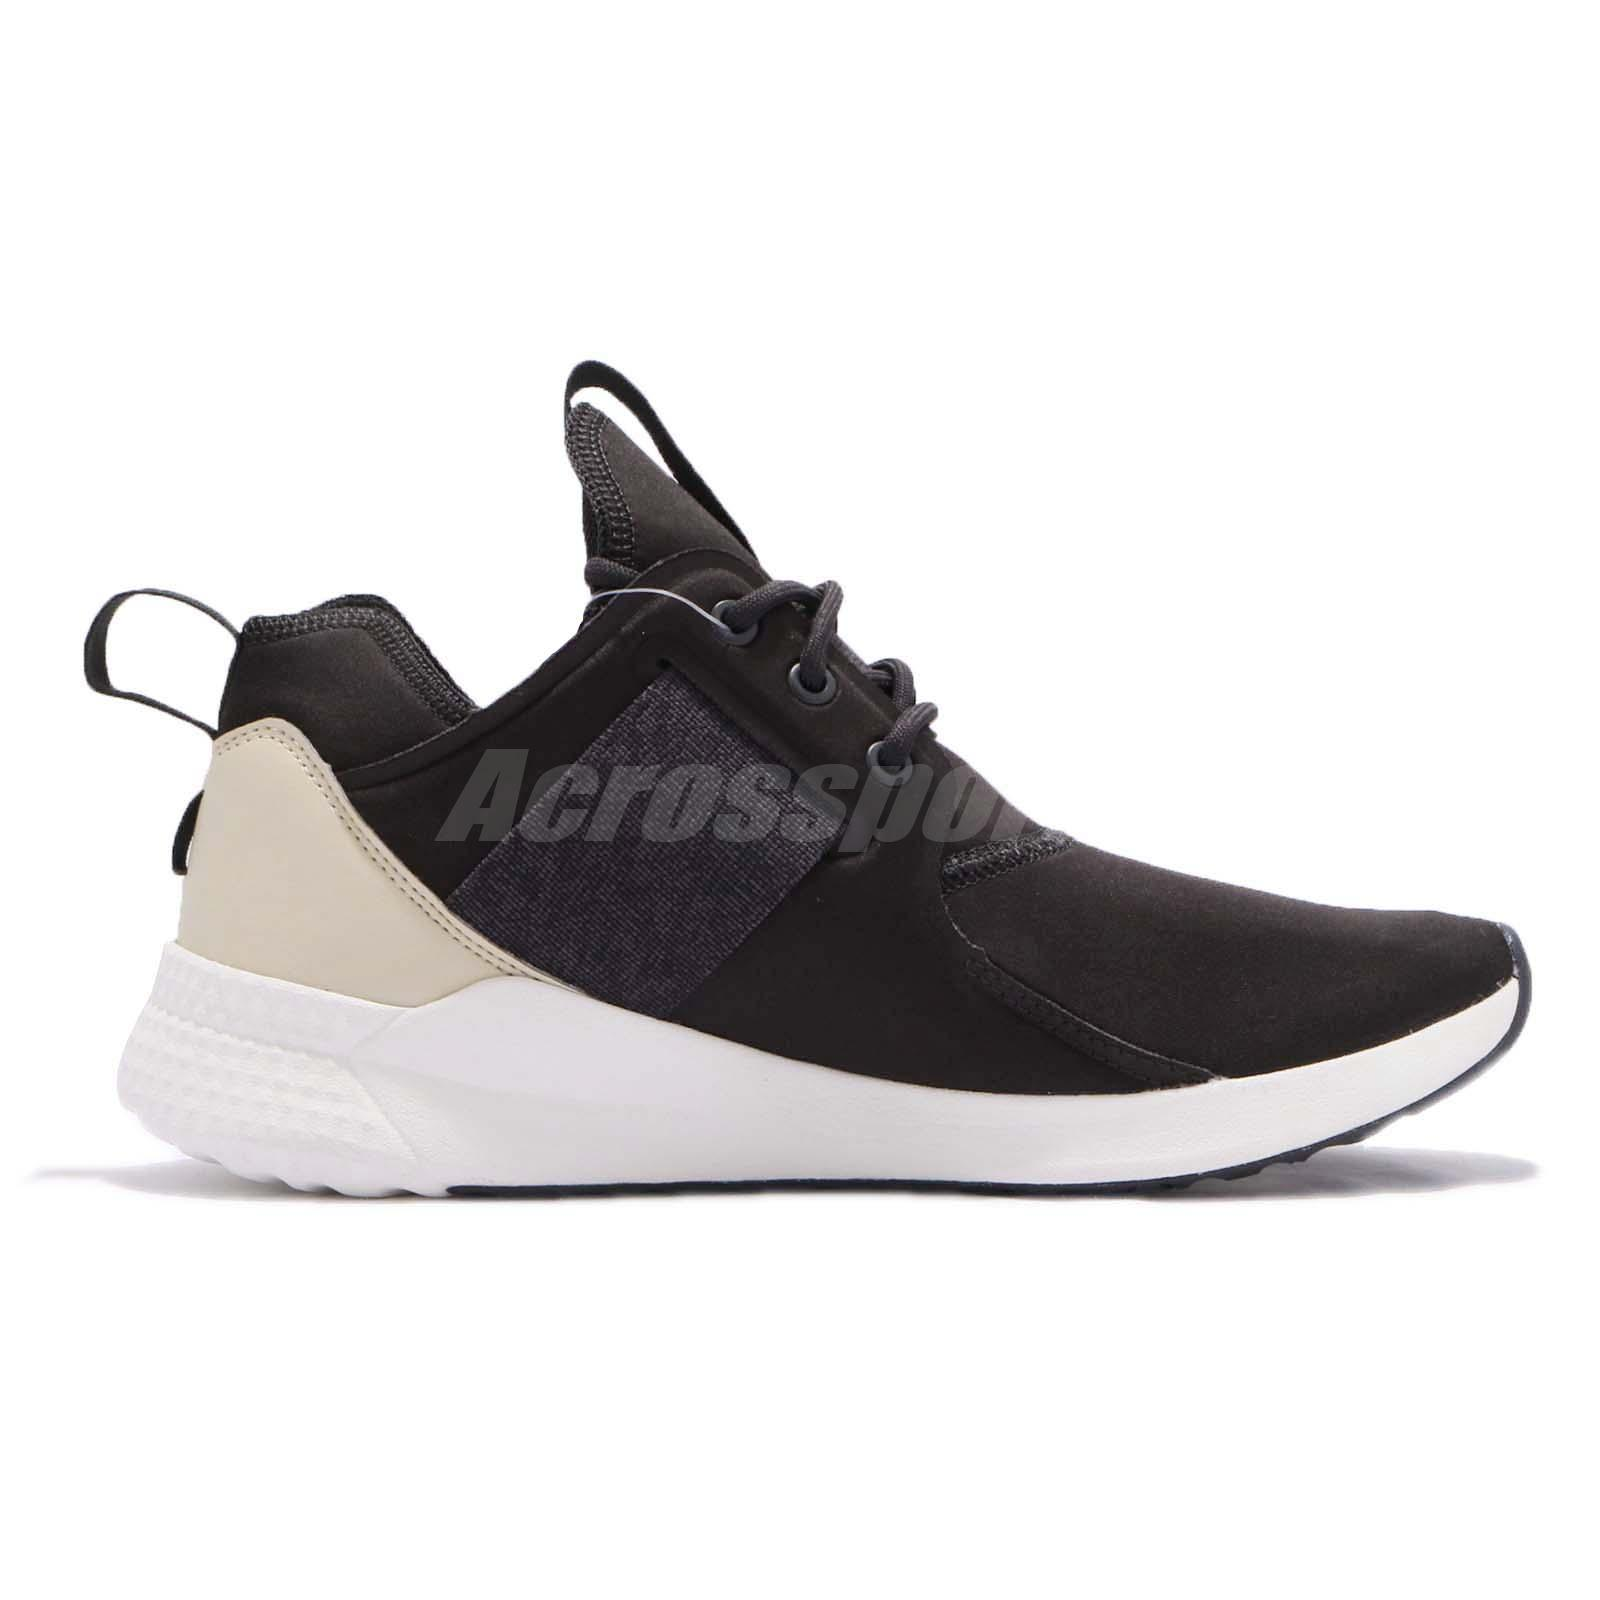 b0feac6d333 Reebok Guresu 1.0 Black Ivory Women Cross Training Dance Shoes ...